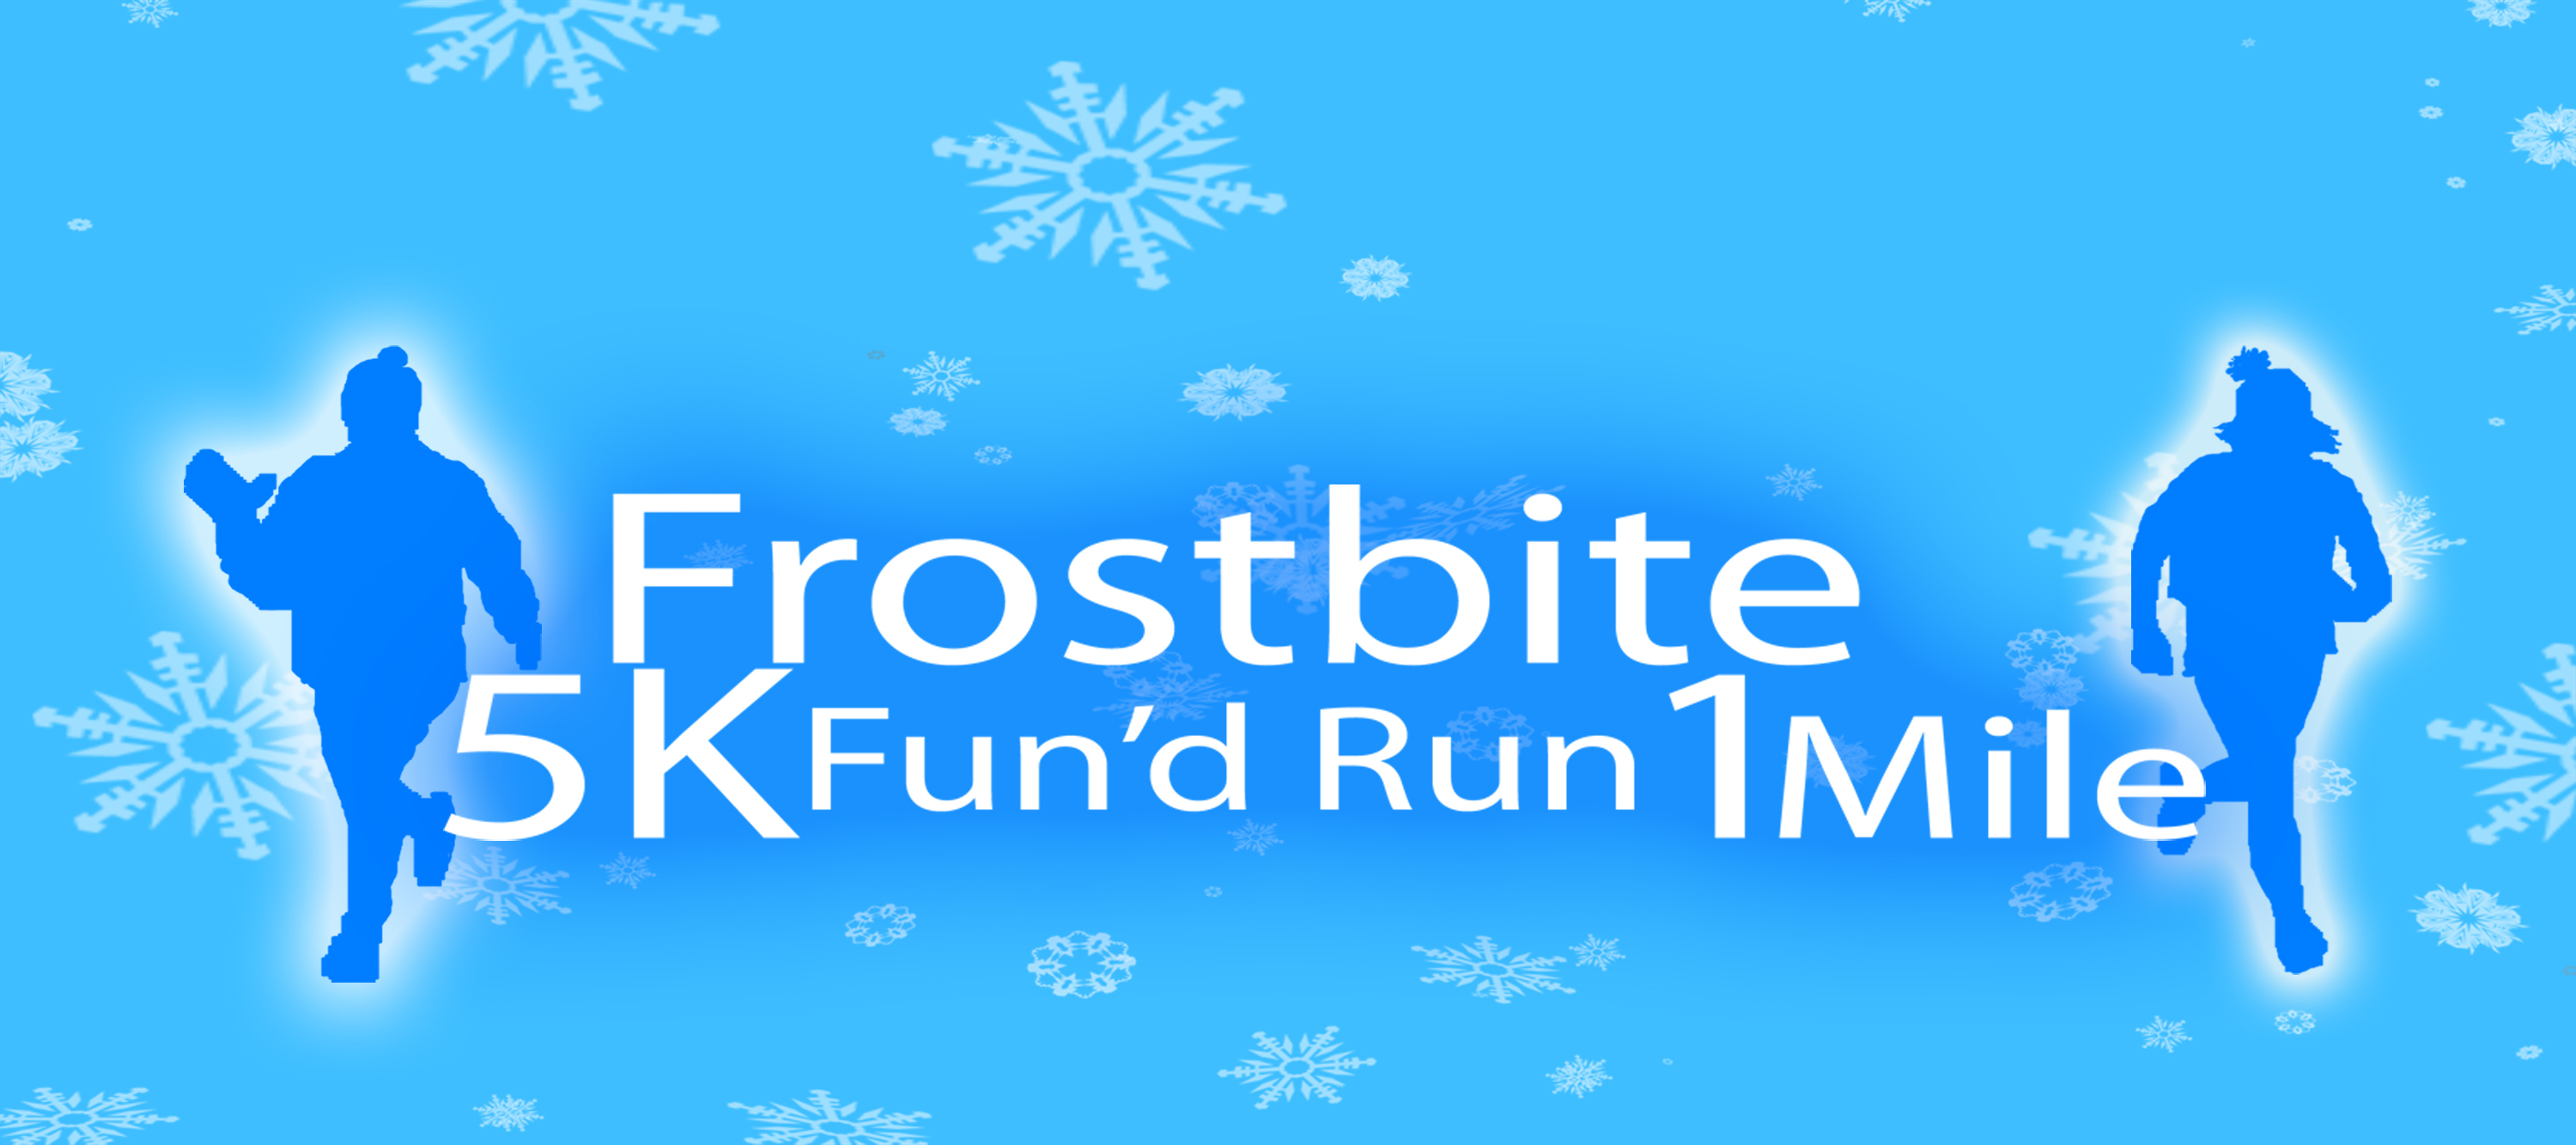 frostbite-5k-and-1mile-fund-run-sponsor